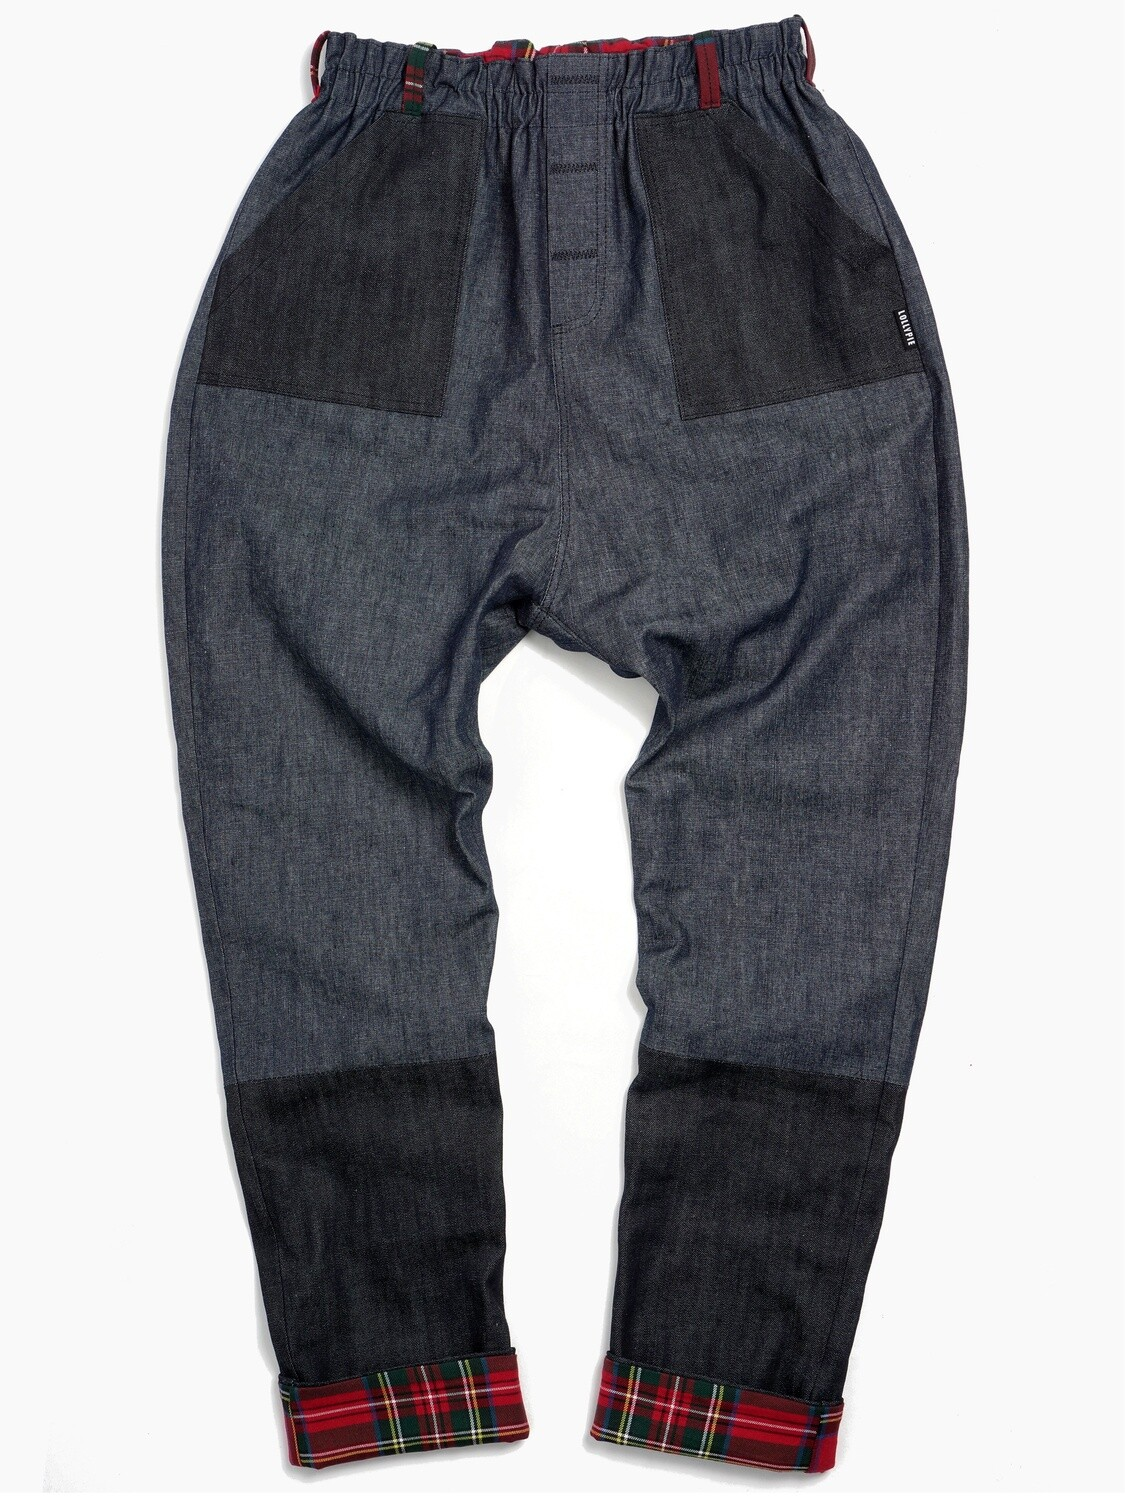 Winter jeans with lining